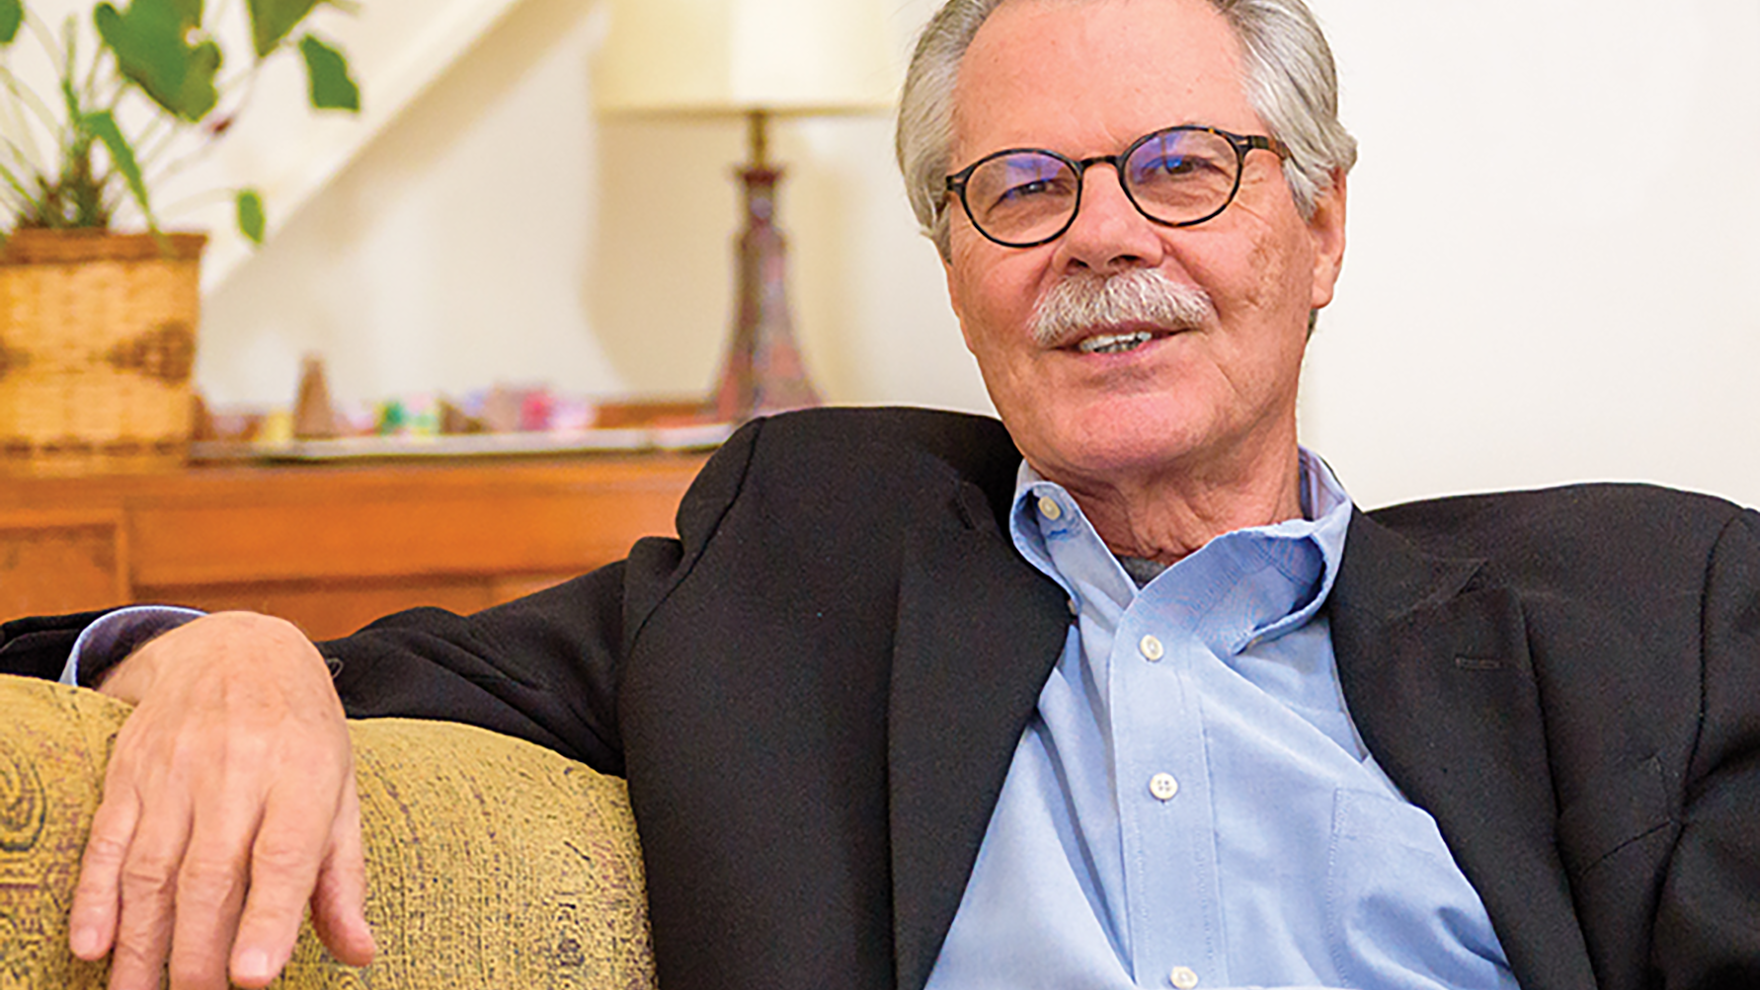 In the 1970s, Horace Newcomb (AM'65, PhD'69) made us look at TV in a new way.